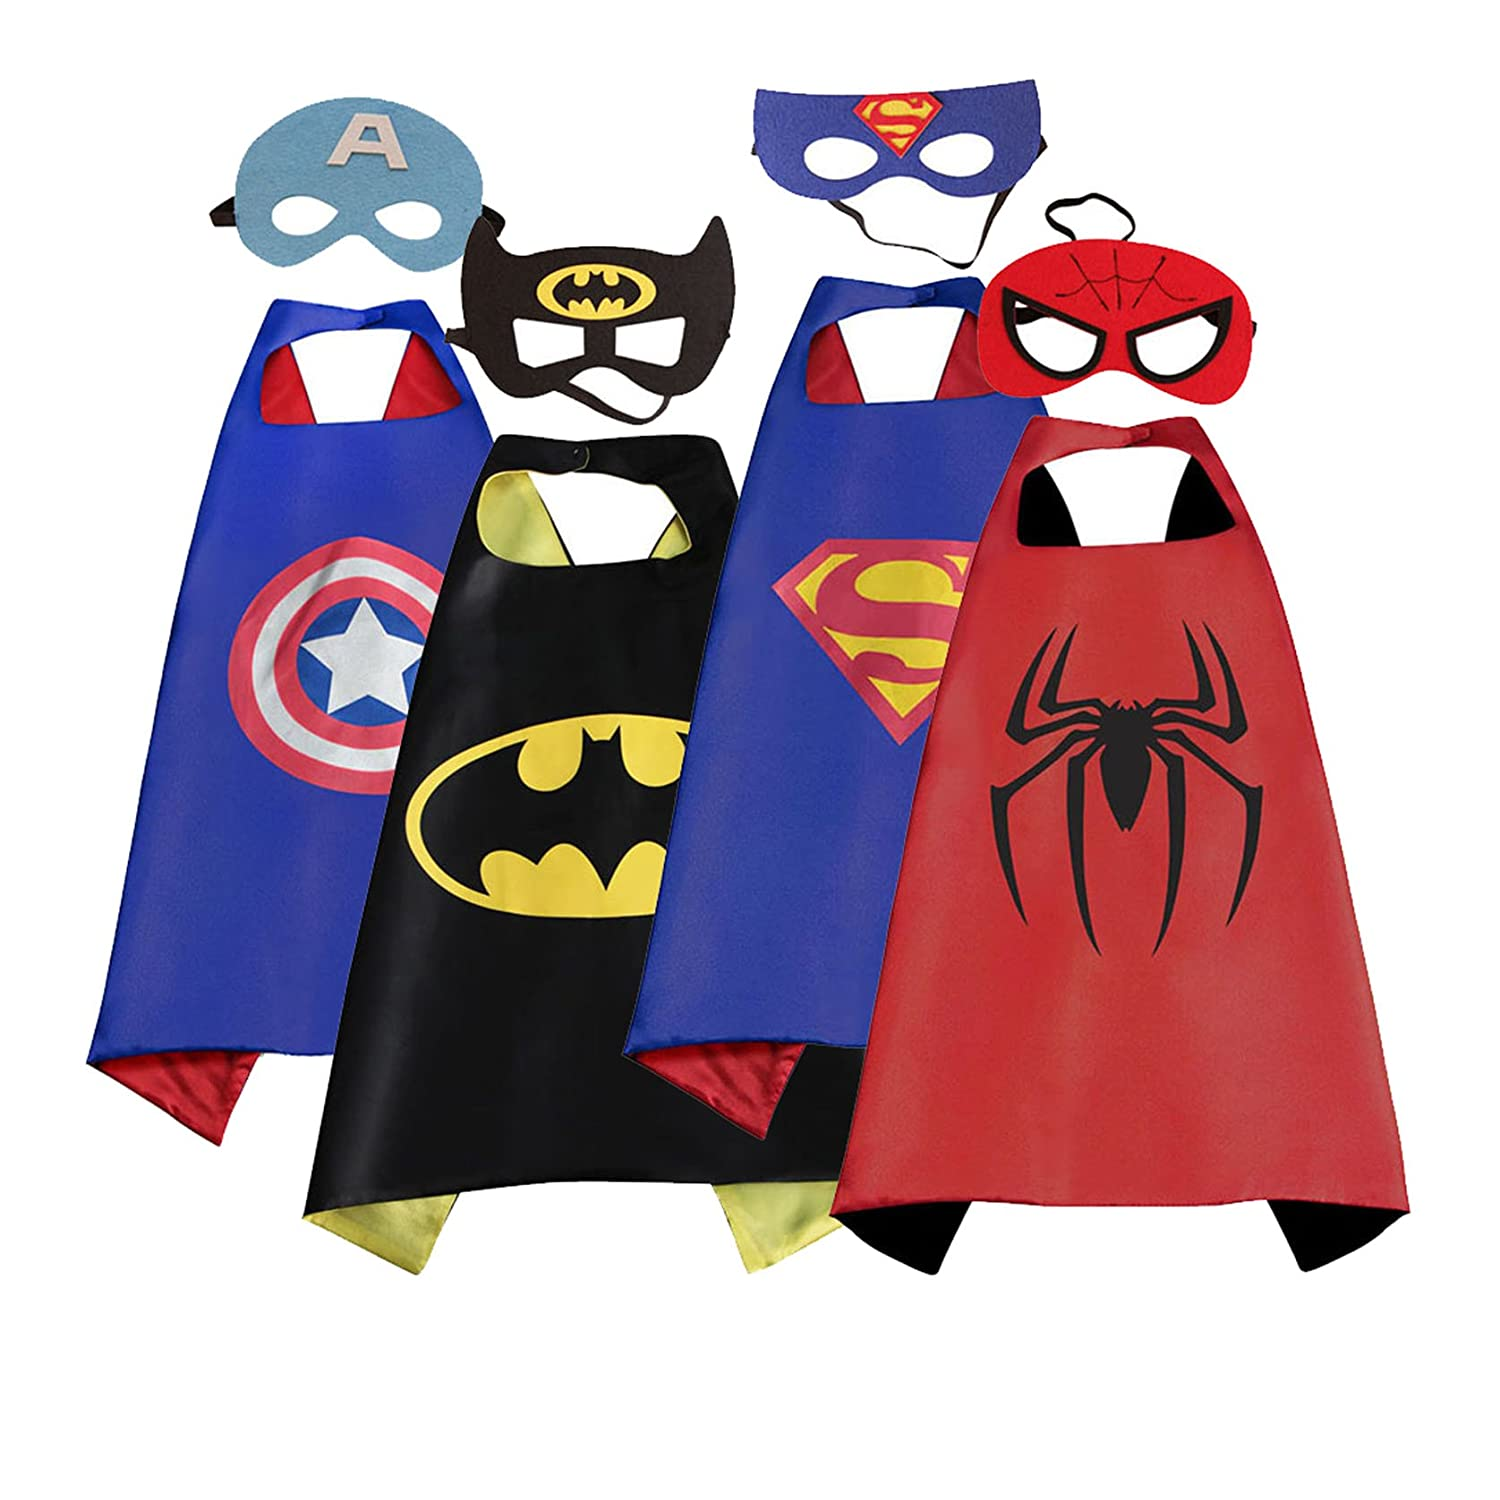 Mizzuco Cartoon Dress up Costumes Satin Capes with Felt Masks for Boys 4pcs